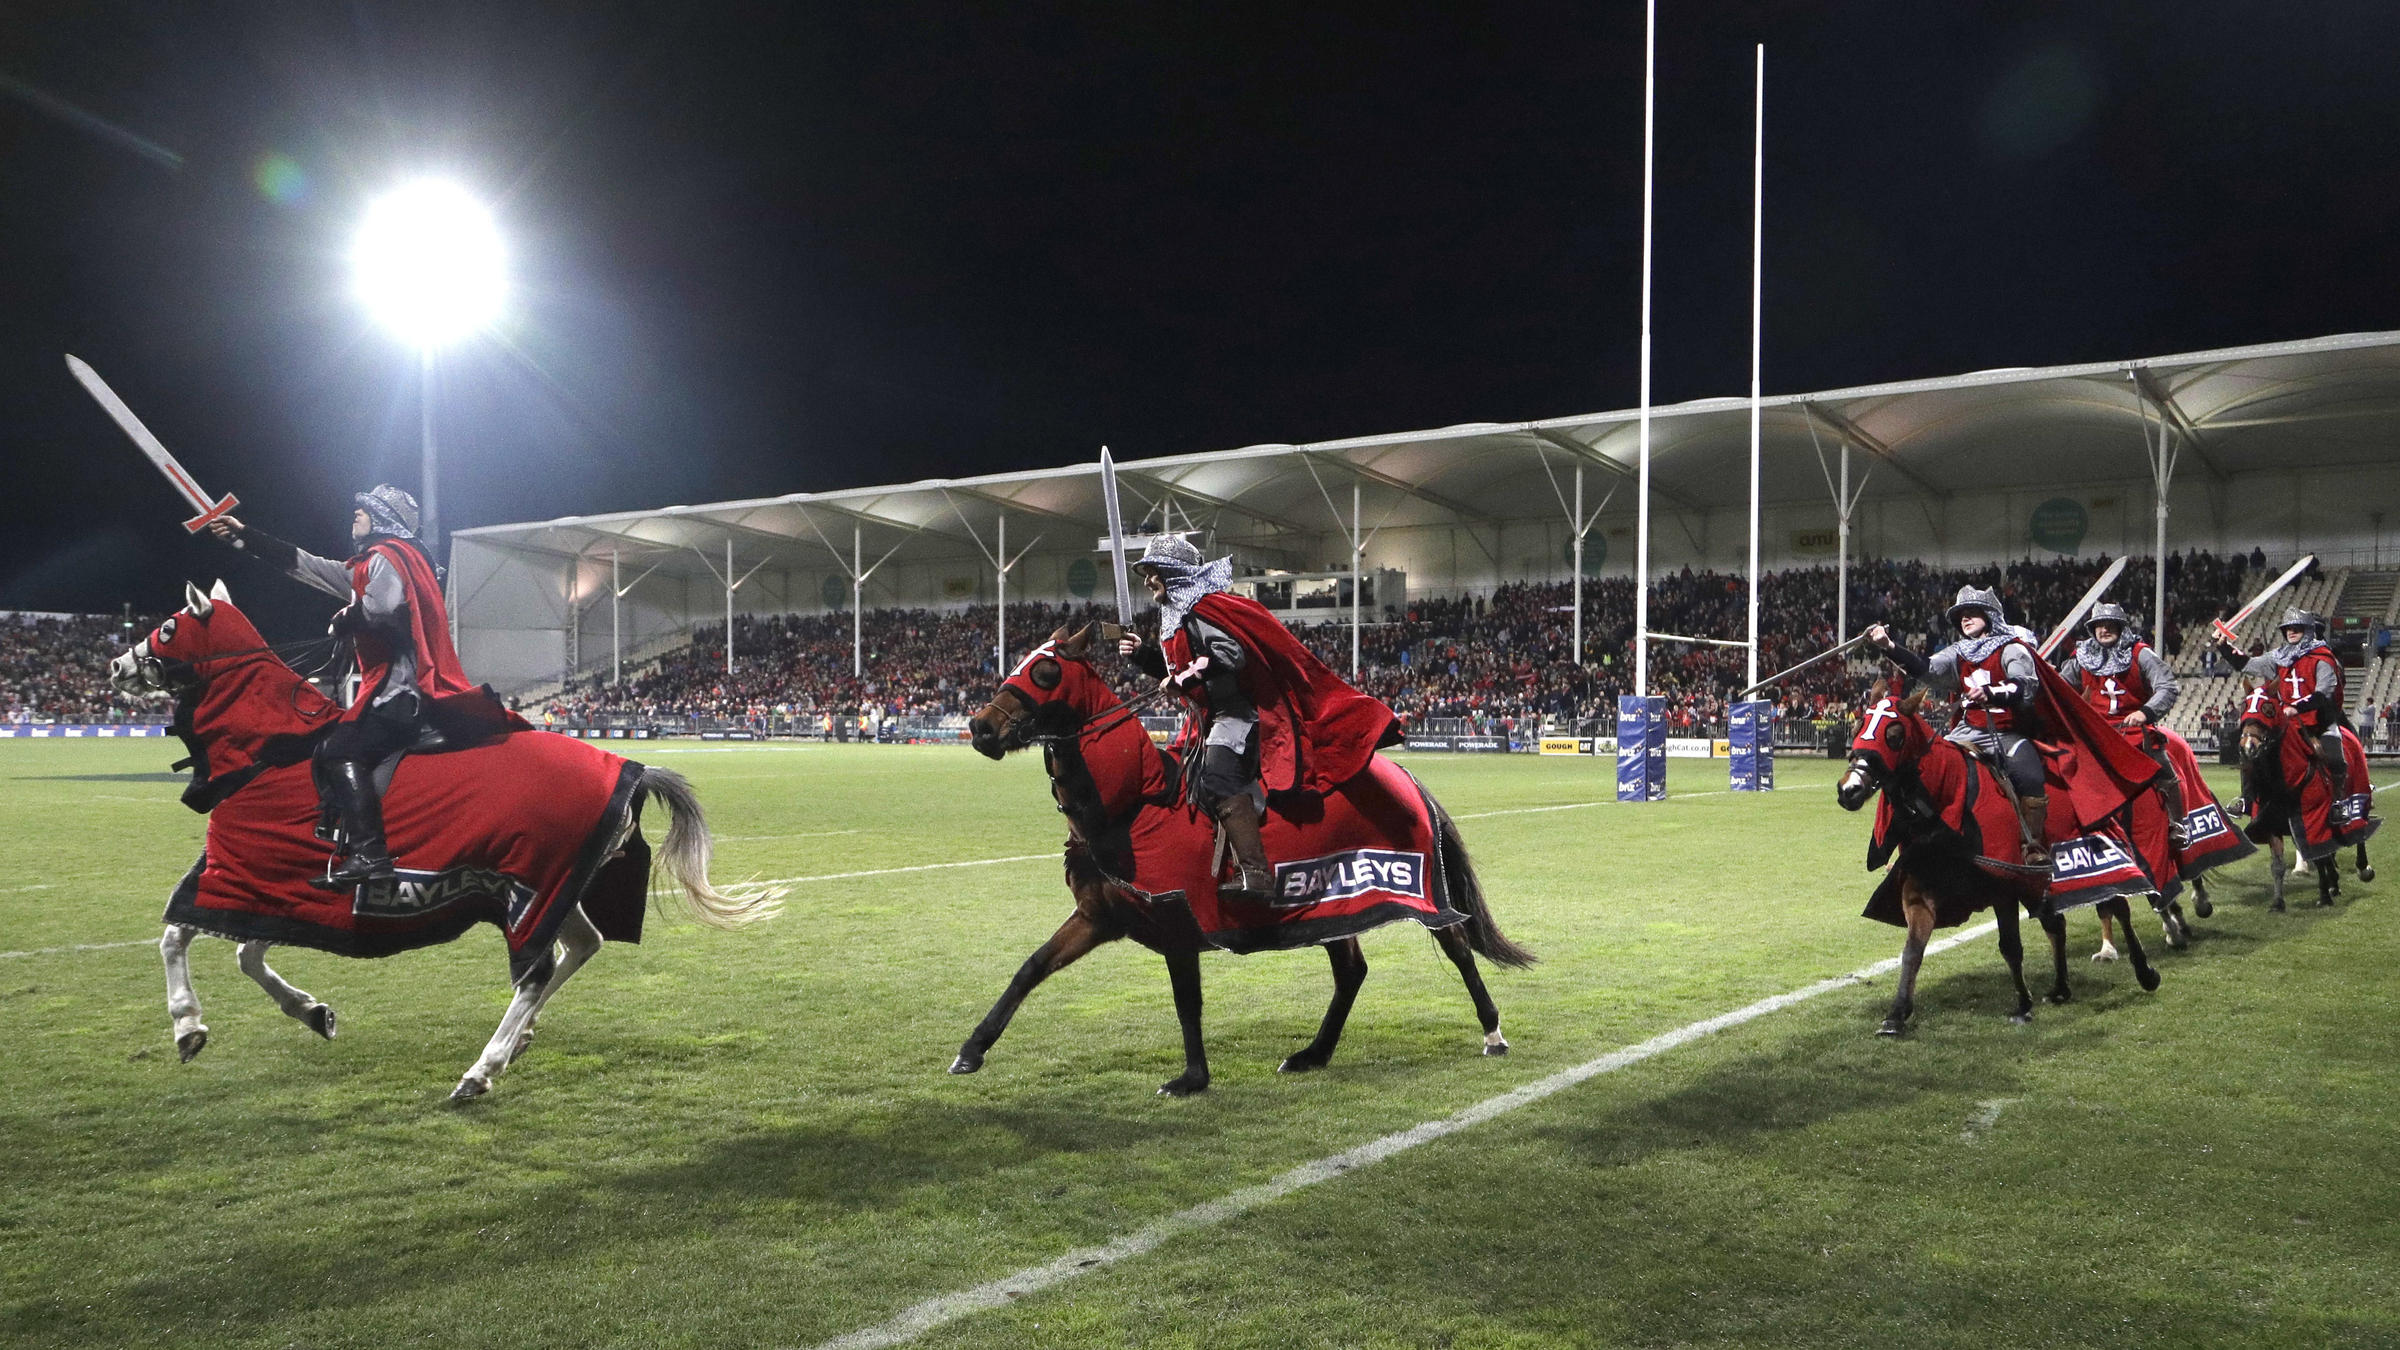 Crusaders name change: Maintaining the status quo 'no longer tenable'